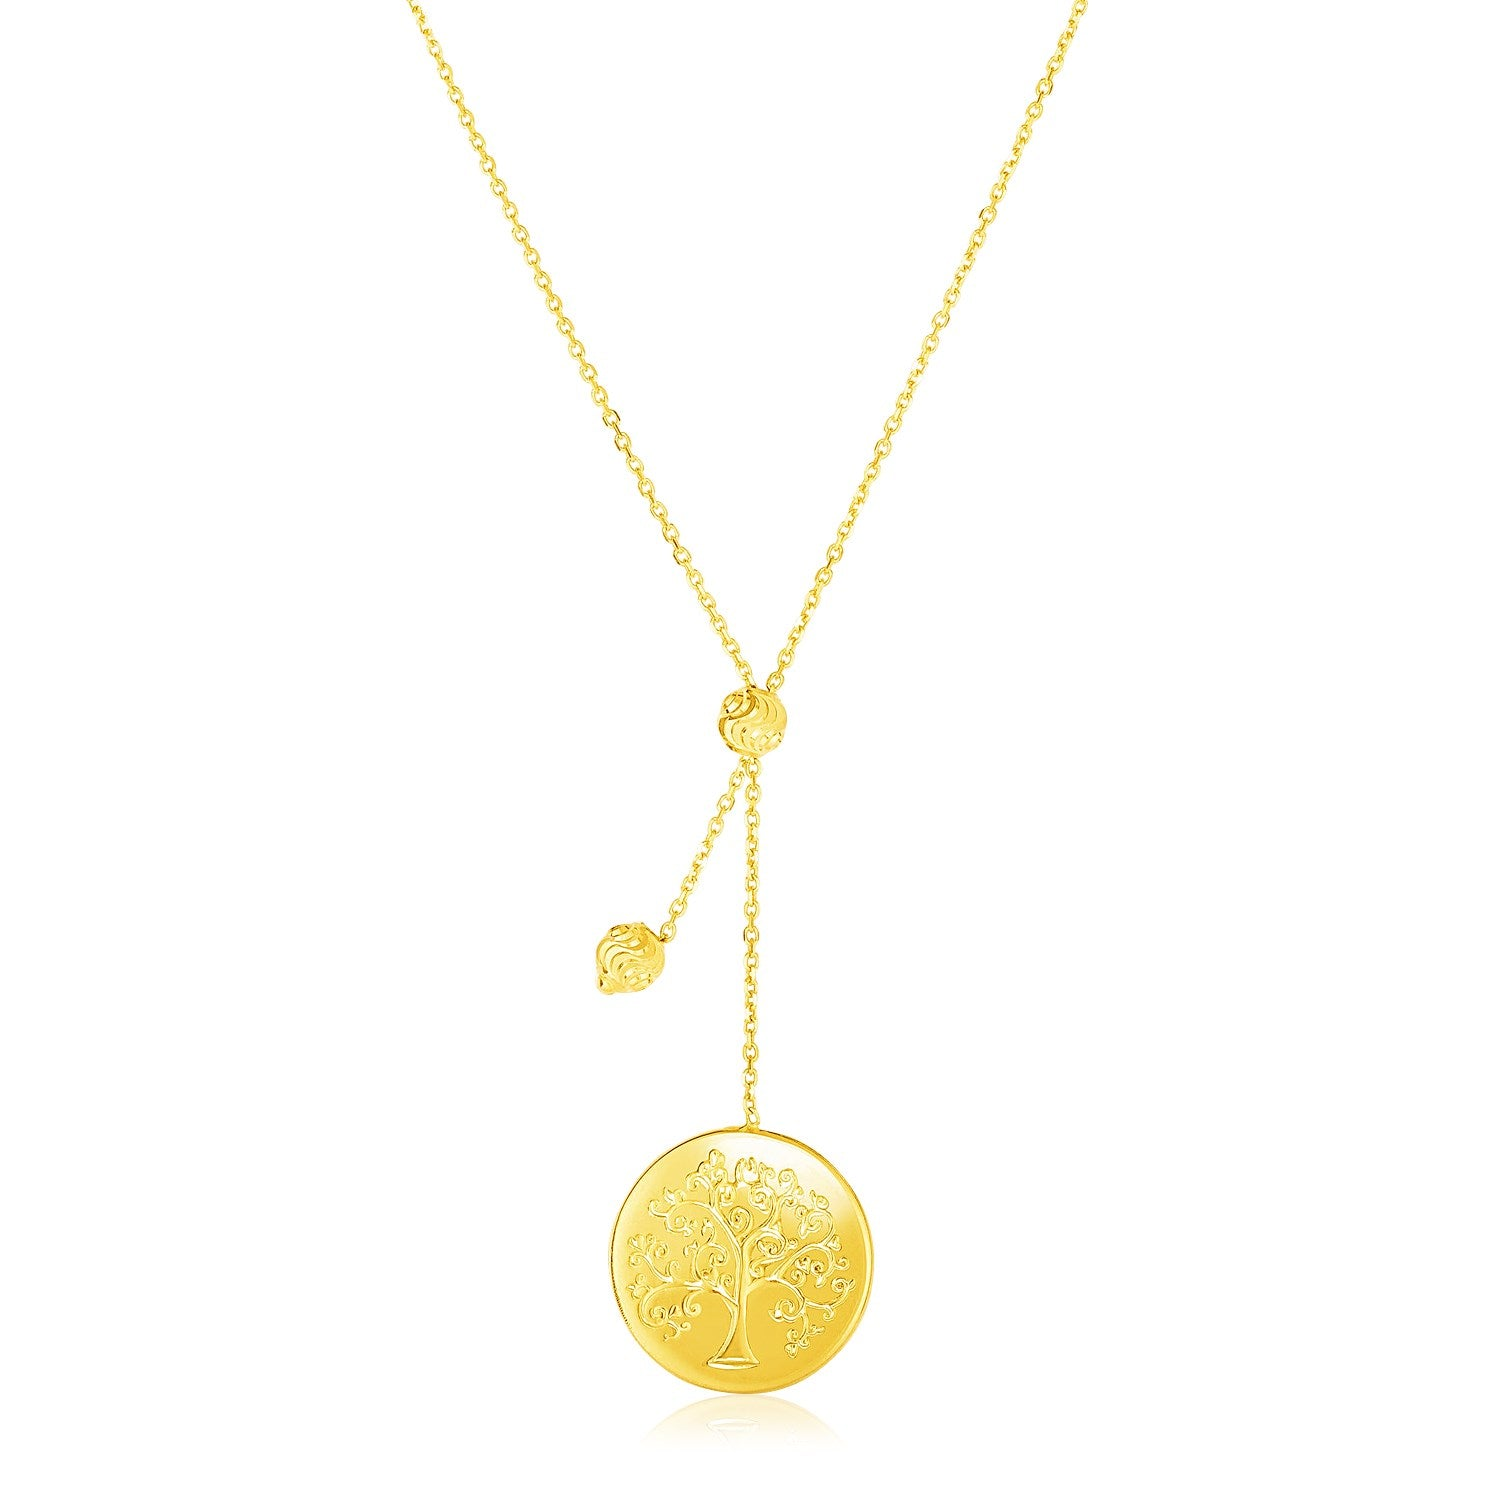 14k Yellow Gold Lariat Style Necklace with Tree of Life Pendant